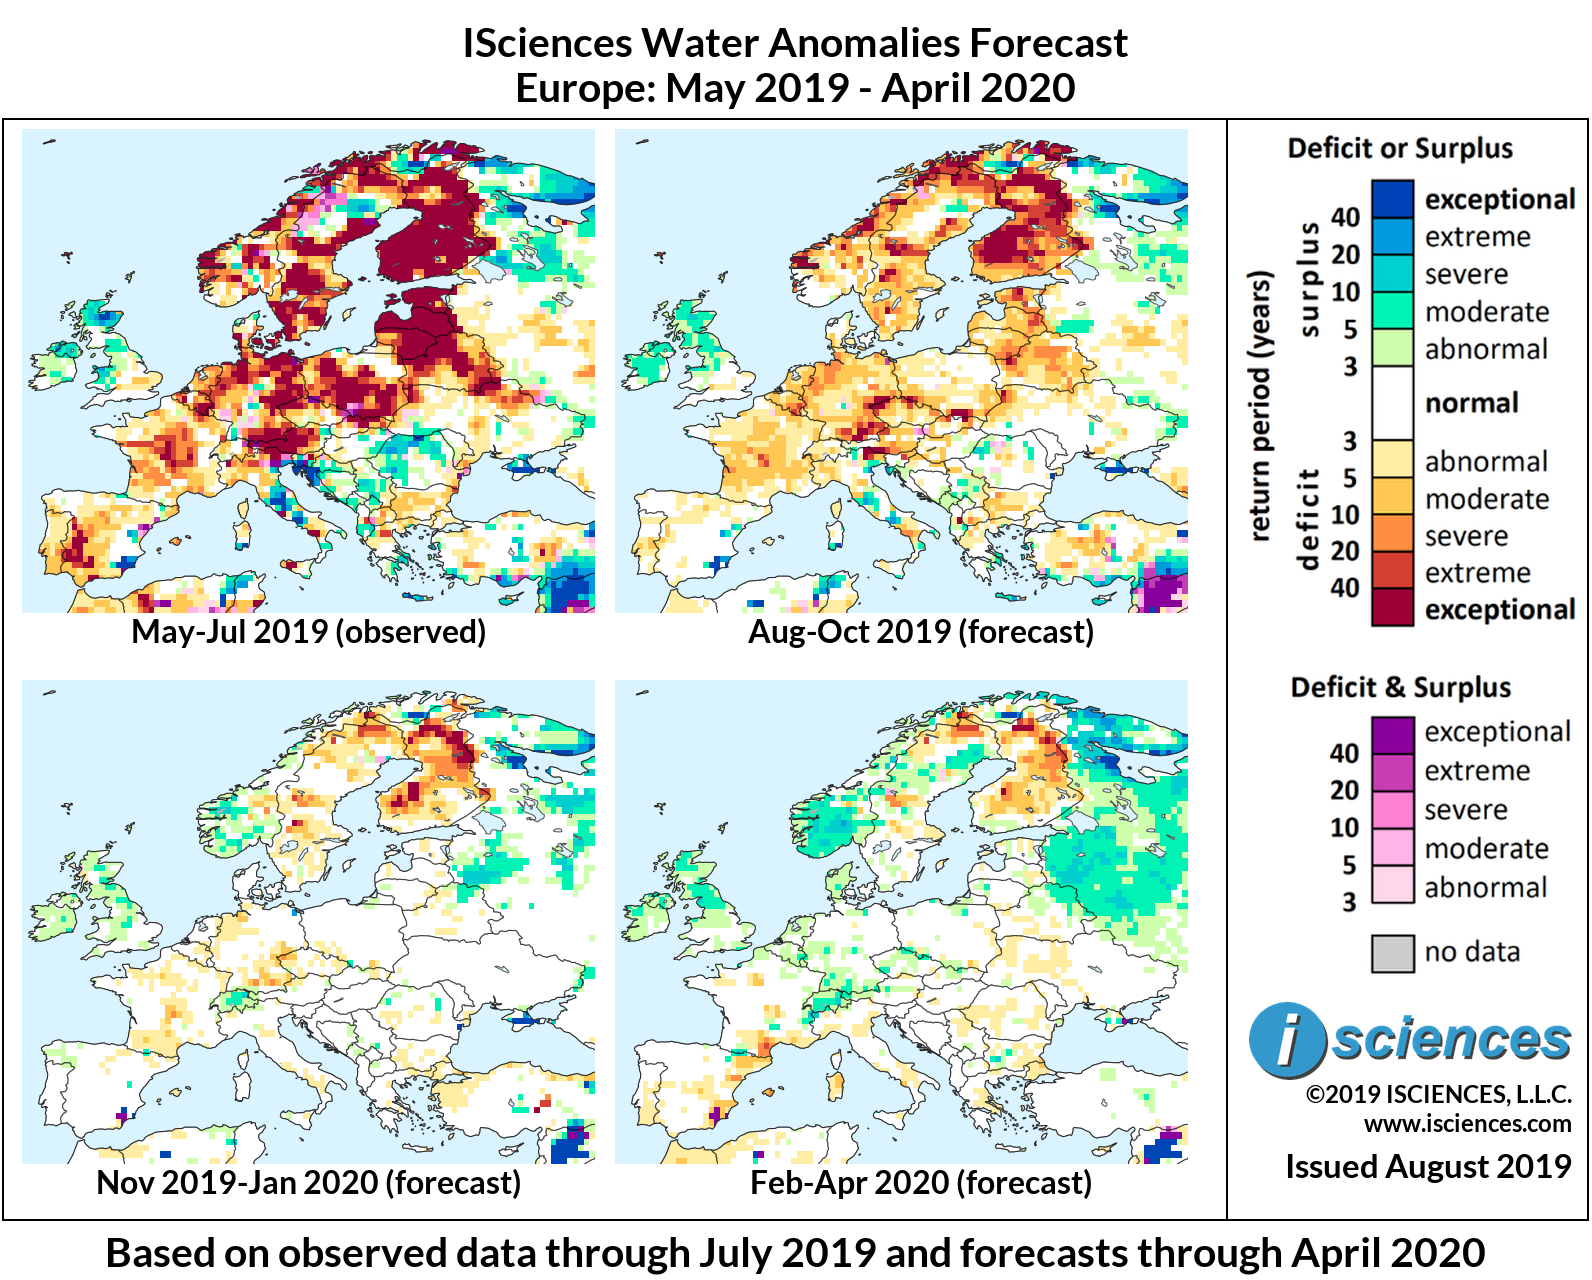 ISciences_Europe_Composite_Adjusted_201905-202004_3mo_panel.png